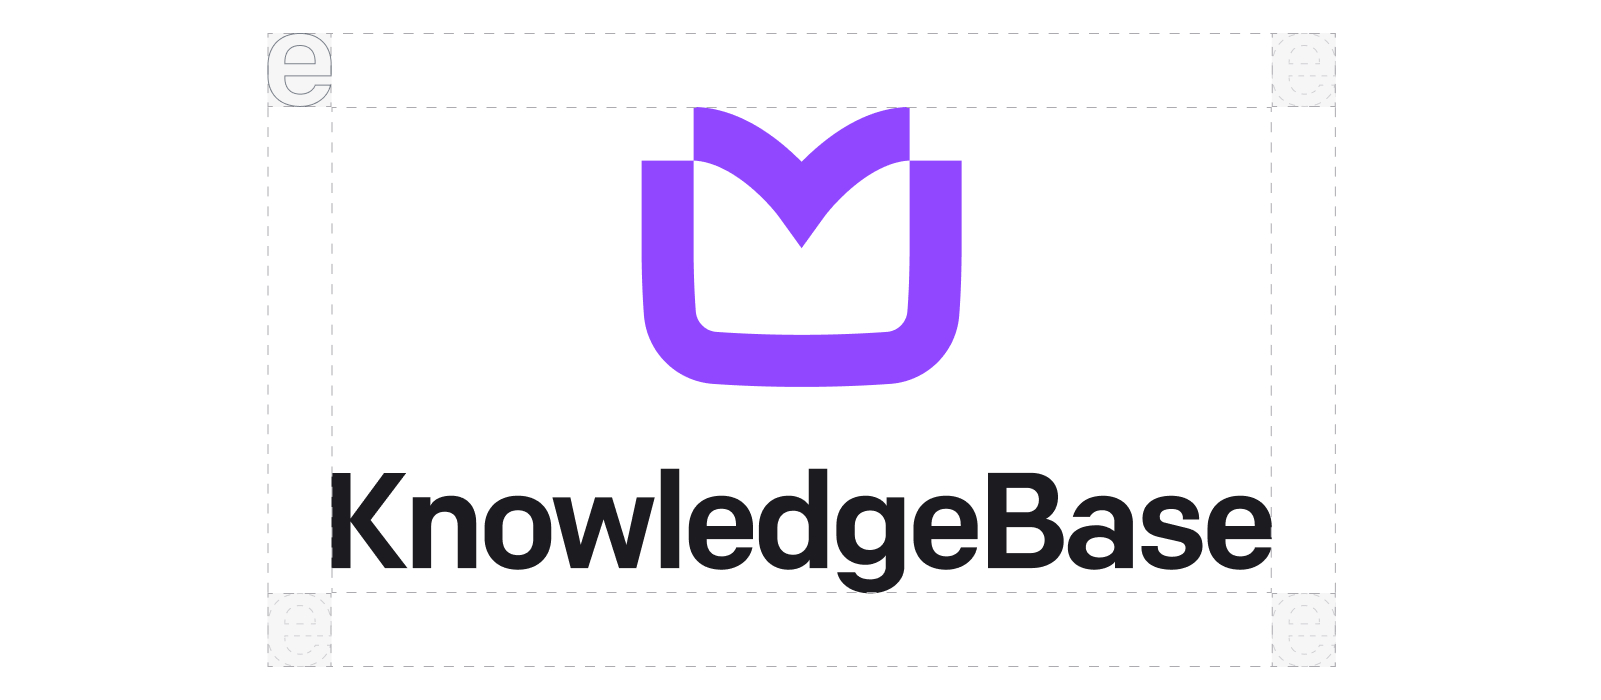 KnowledgeBase logo clear space